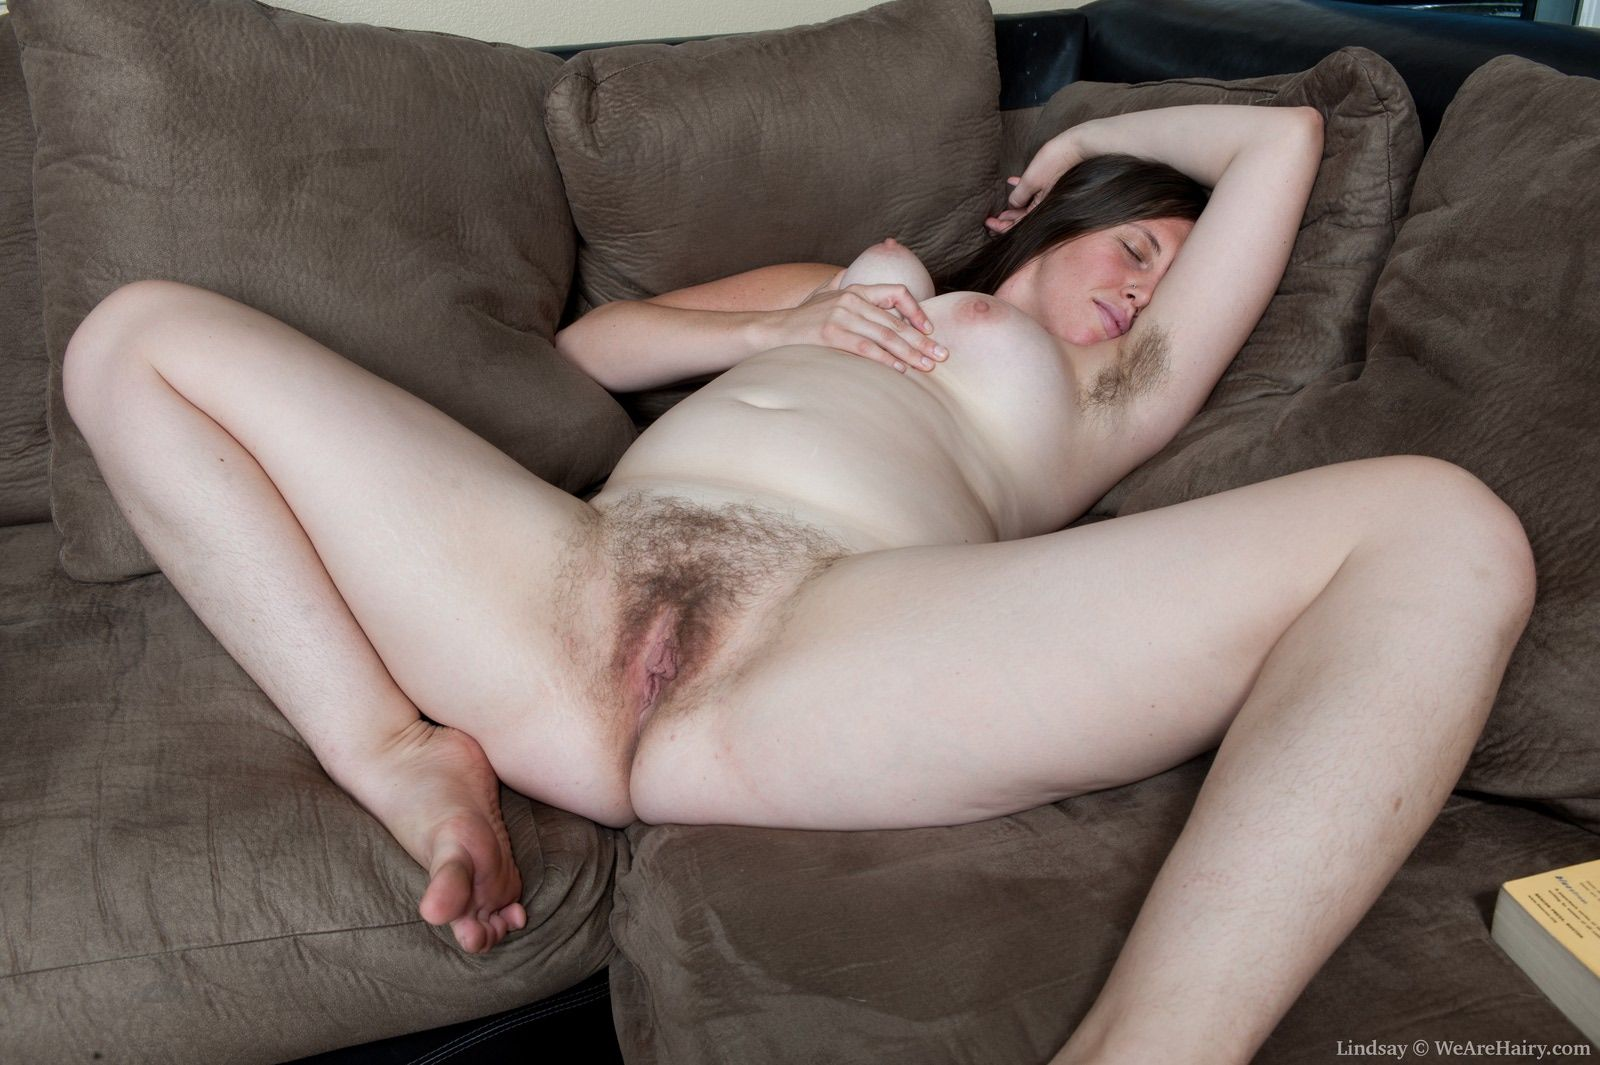 Lindsey Bbw Porn - Chubby lindsey bbw - Photos and other amusements. Comments: 3